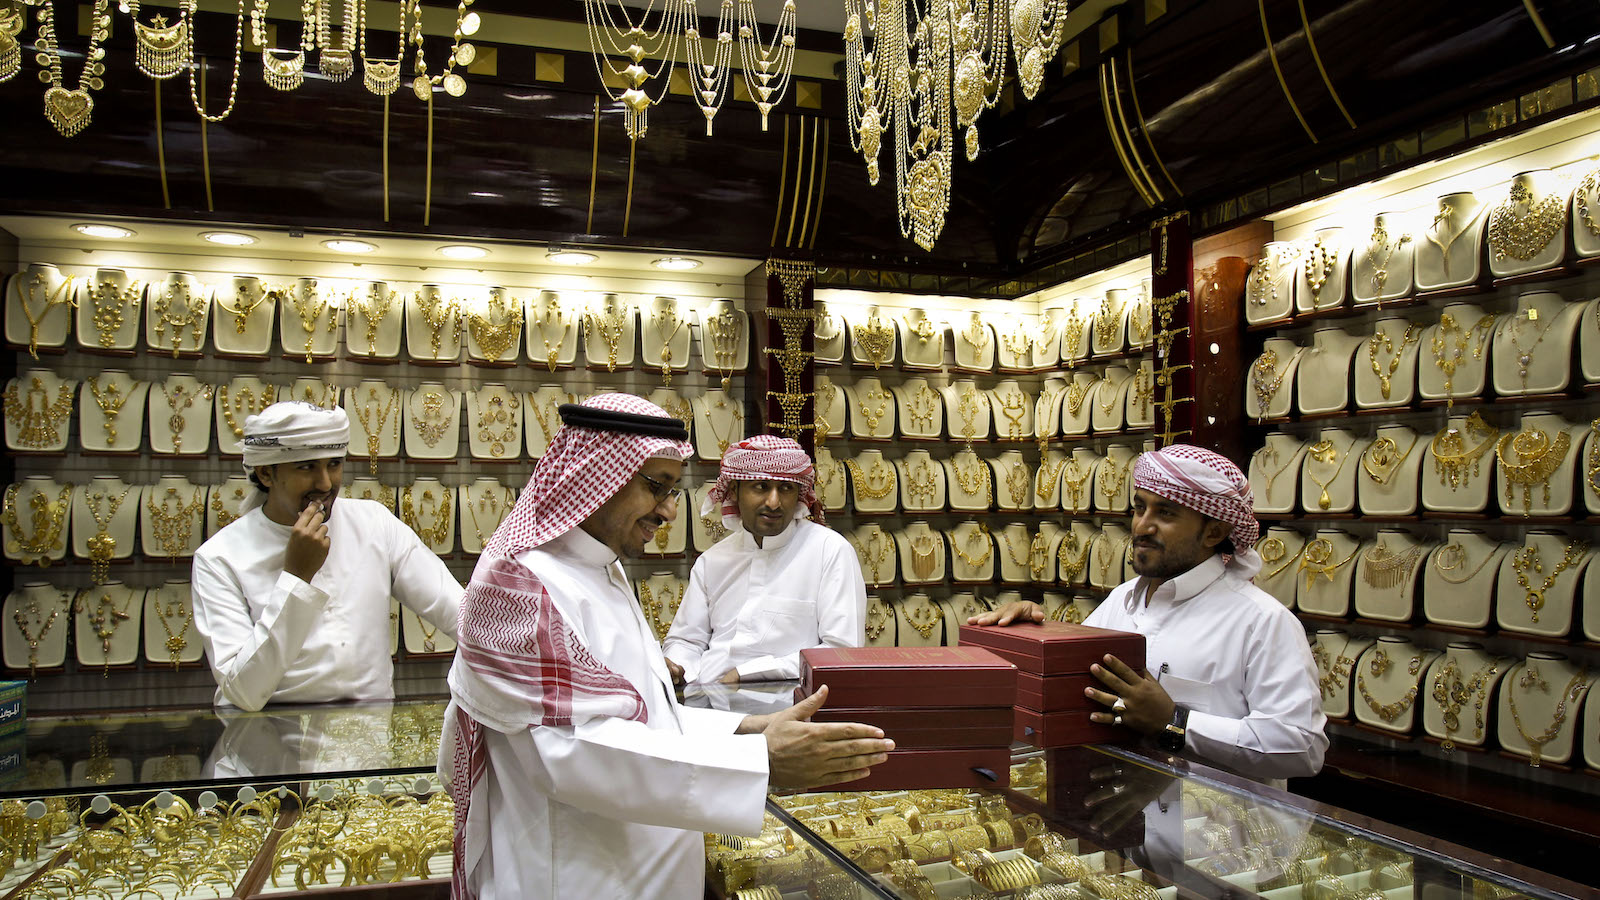 In this Thursday Oct. 11, 2012 photo, a Saudi customer discusses his purchases at a jewelry shop in the gold suq, or market, in Dubai, United Arab Emirates. The price of gold in Dubai is fixed daily and items are sold by weight. with little or no or little charge for the often exquisite workmanship. (AP Photo/Kamran Jebreili)